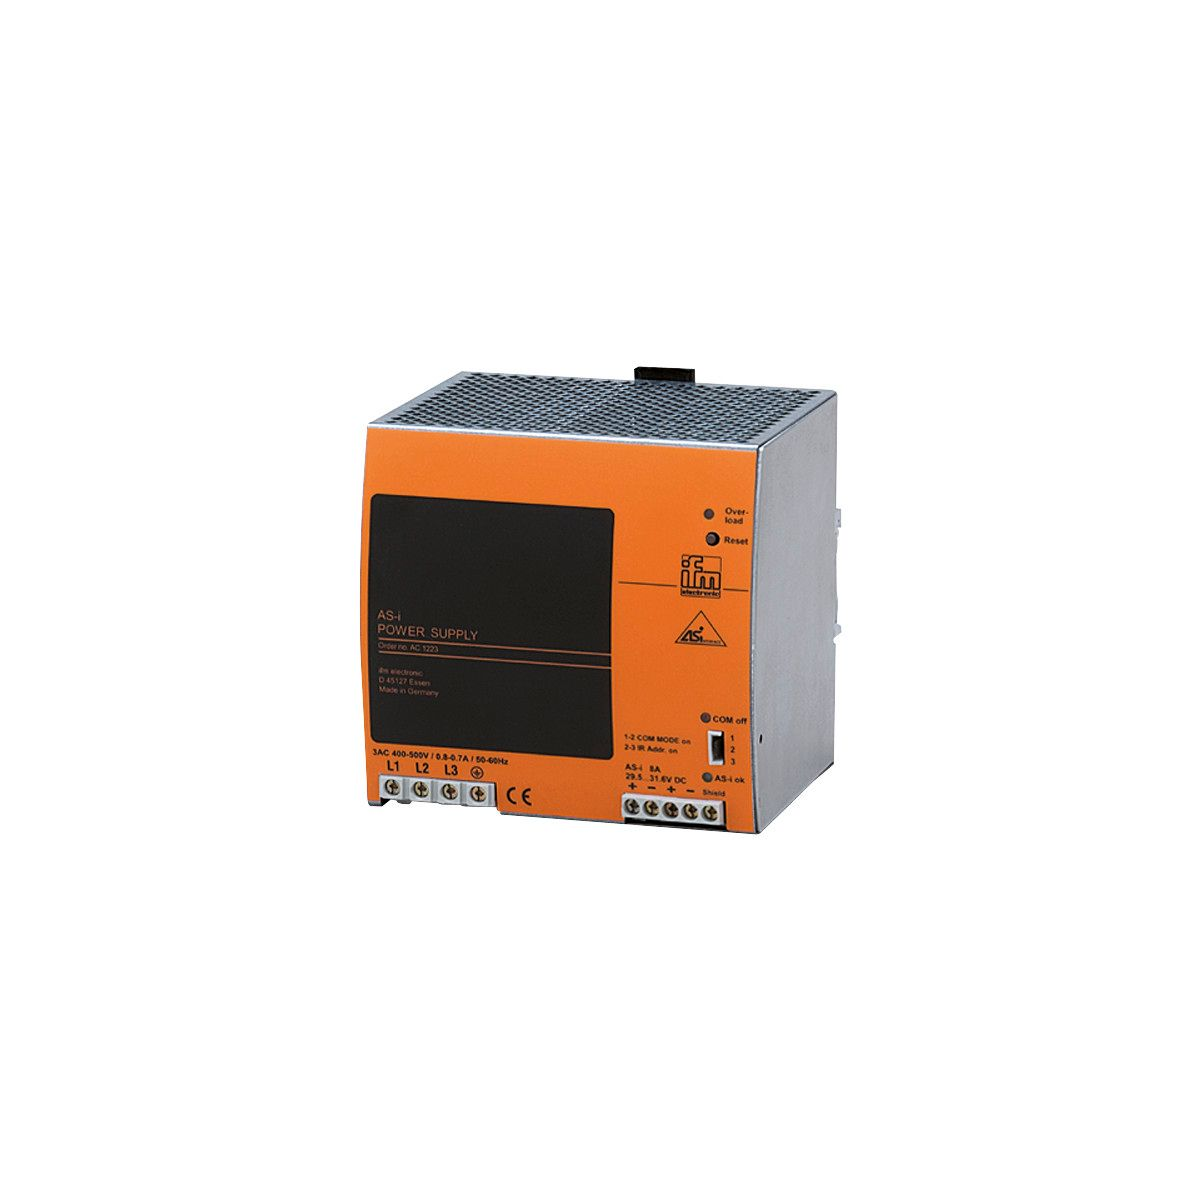 IFM Electronic AS-i Power Supply AC1223 AC 1223